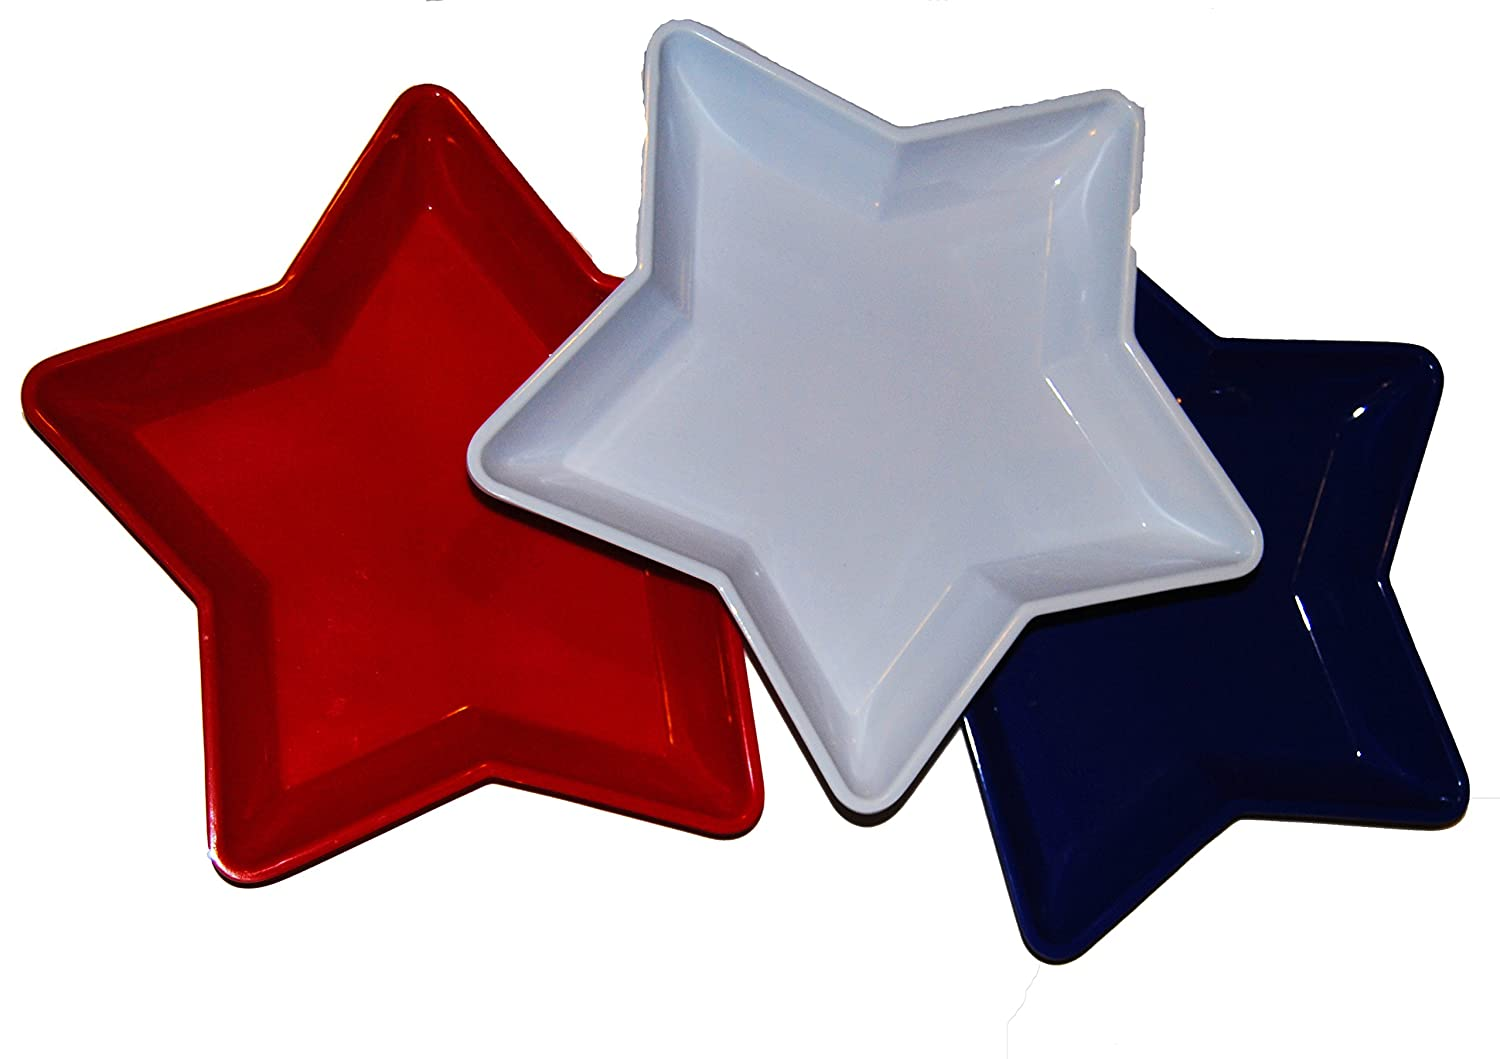 Patriotic Star-shaped Food Trays 3pk (Red, White, and Blue)